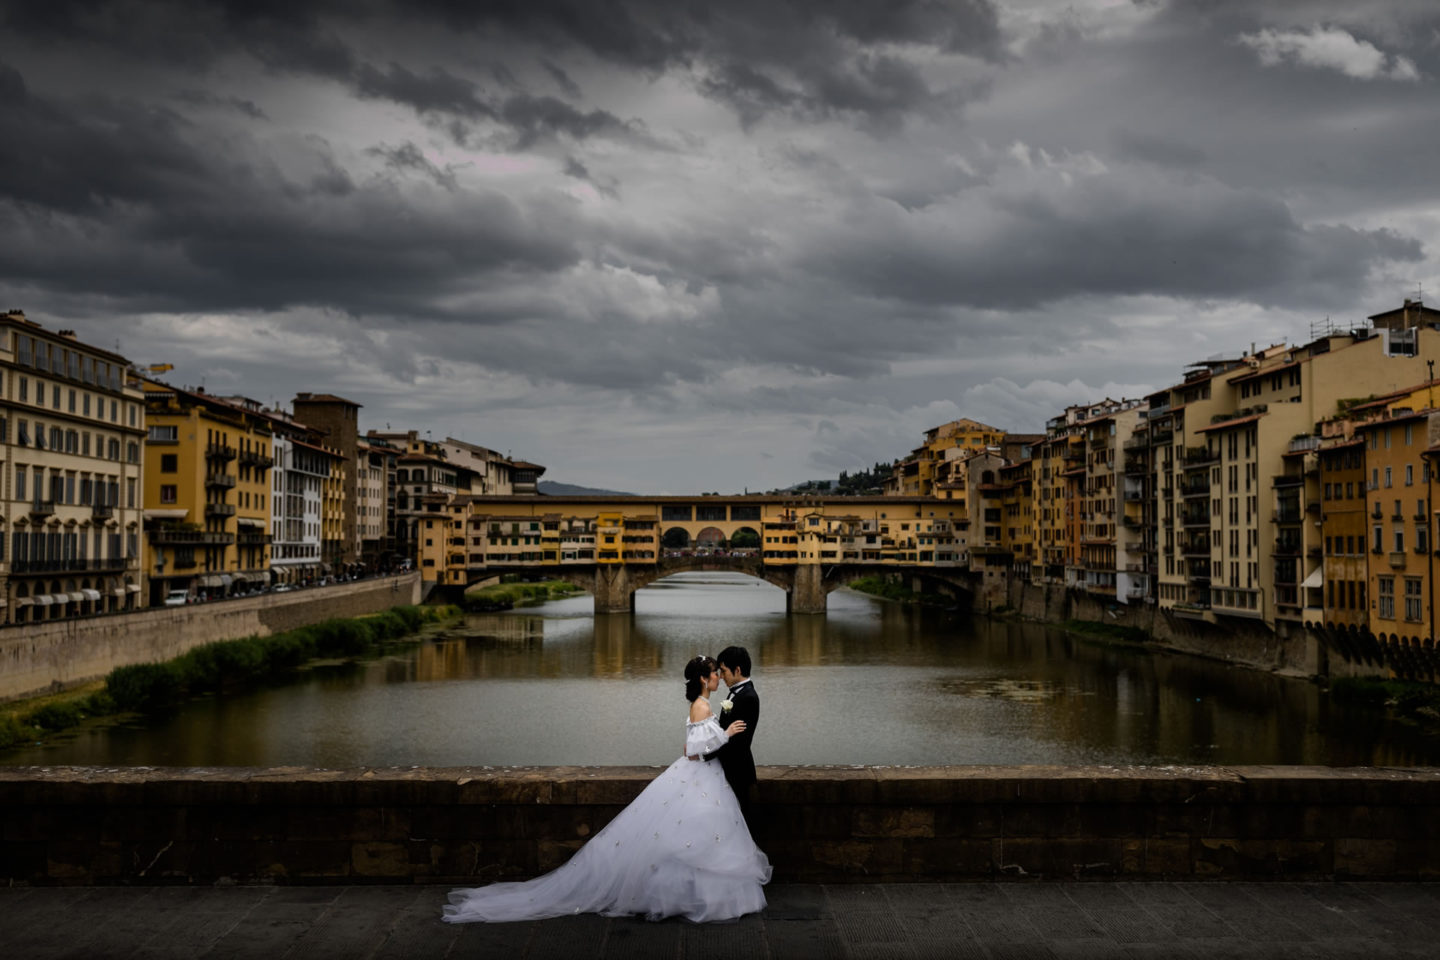 Citylife :: Bride and groom. Couple :: David Bastianoni wedding photographer